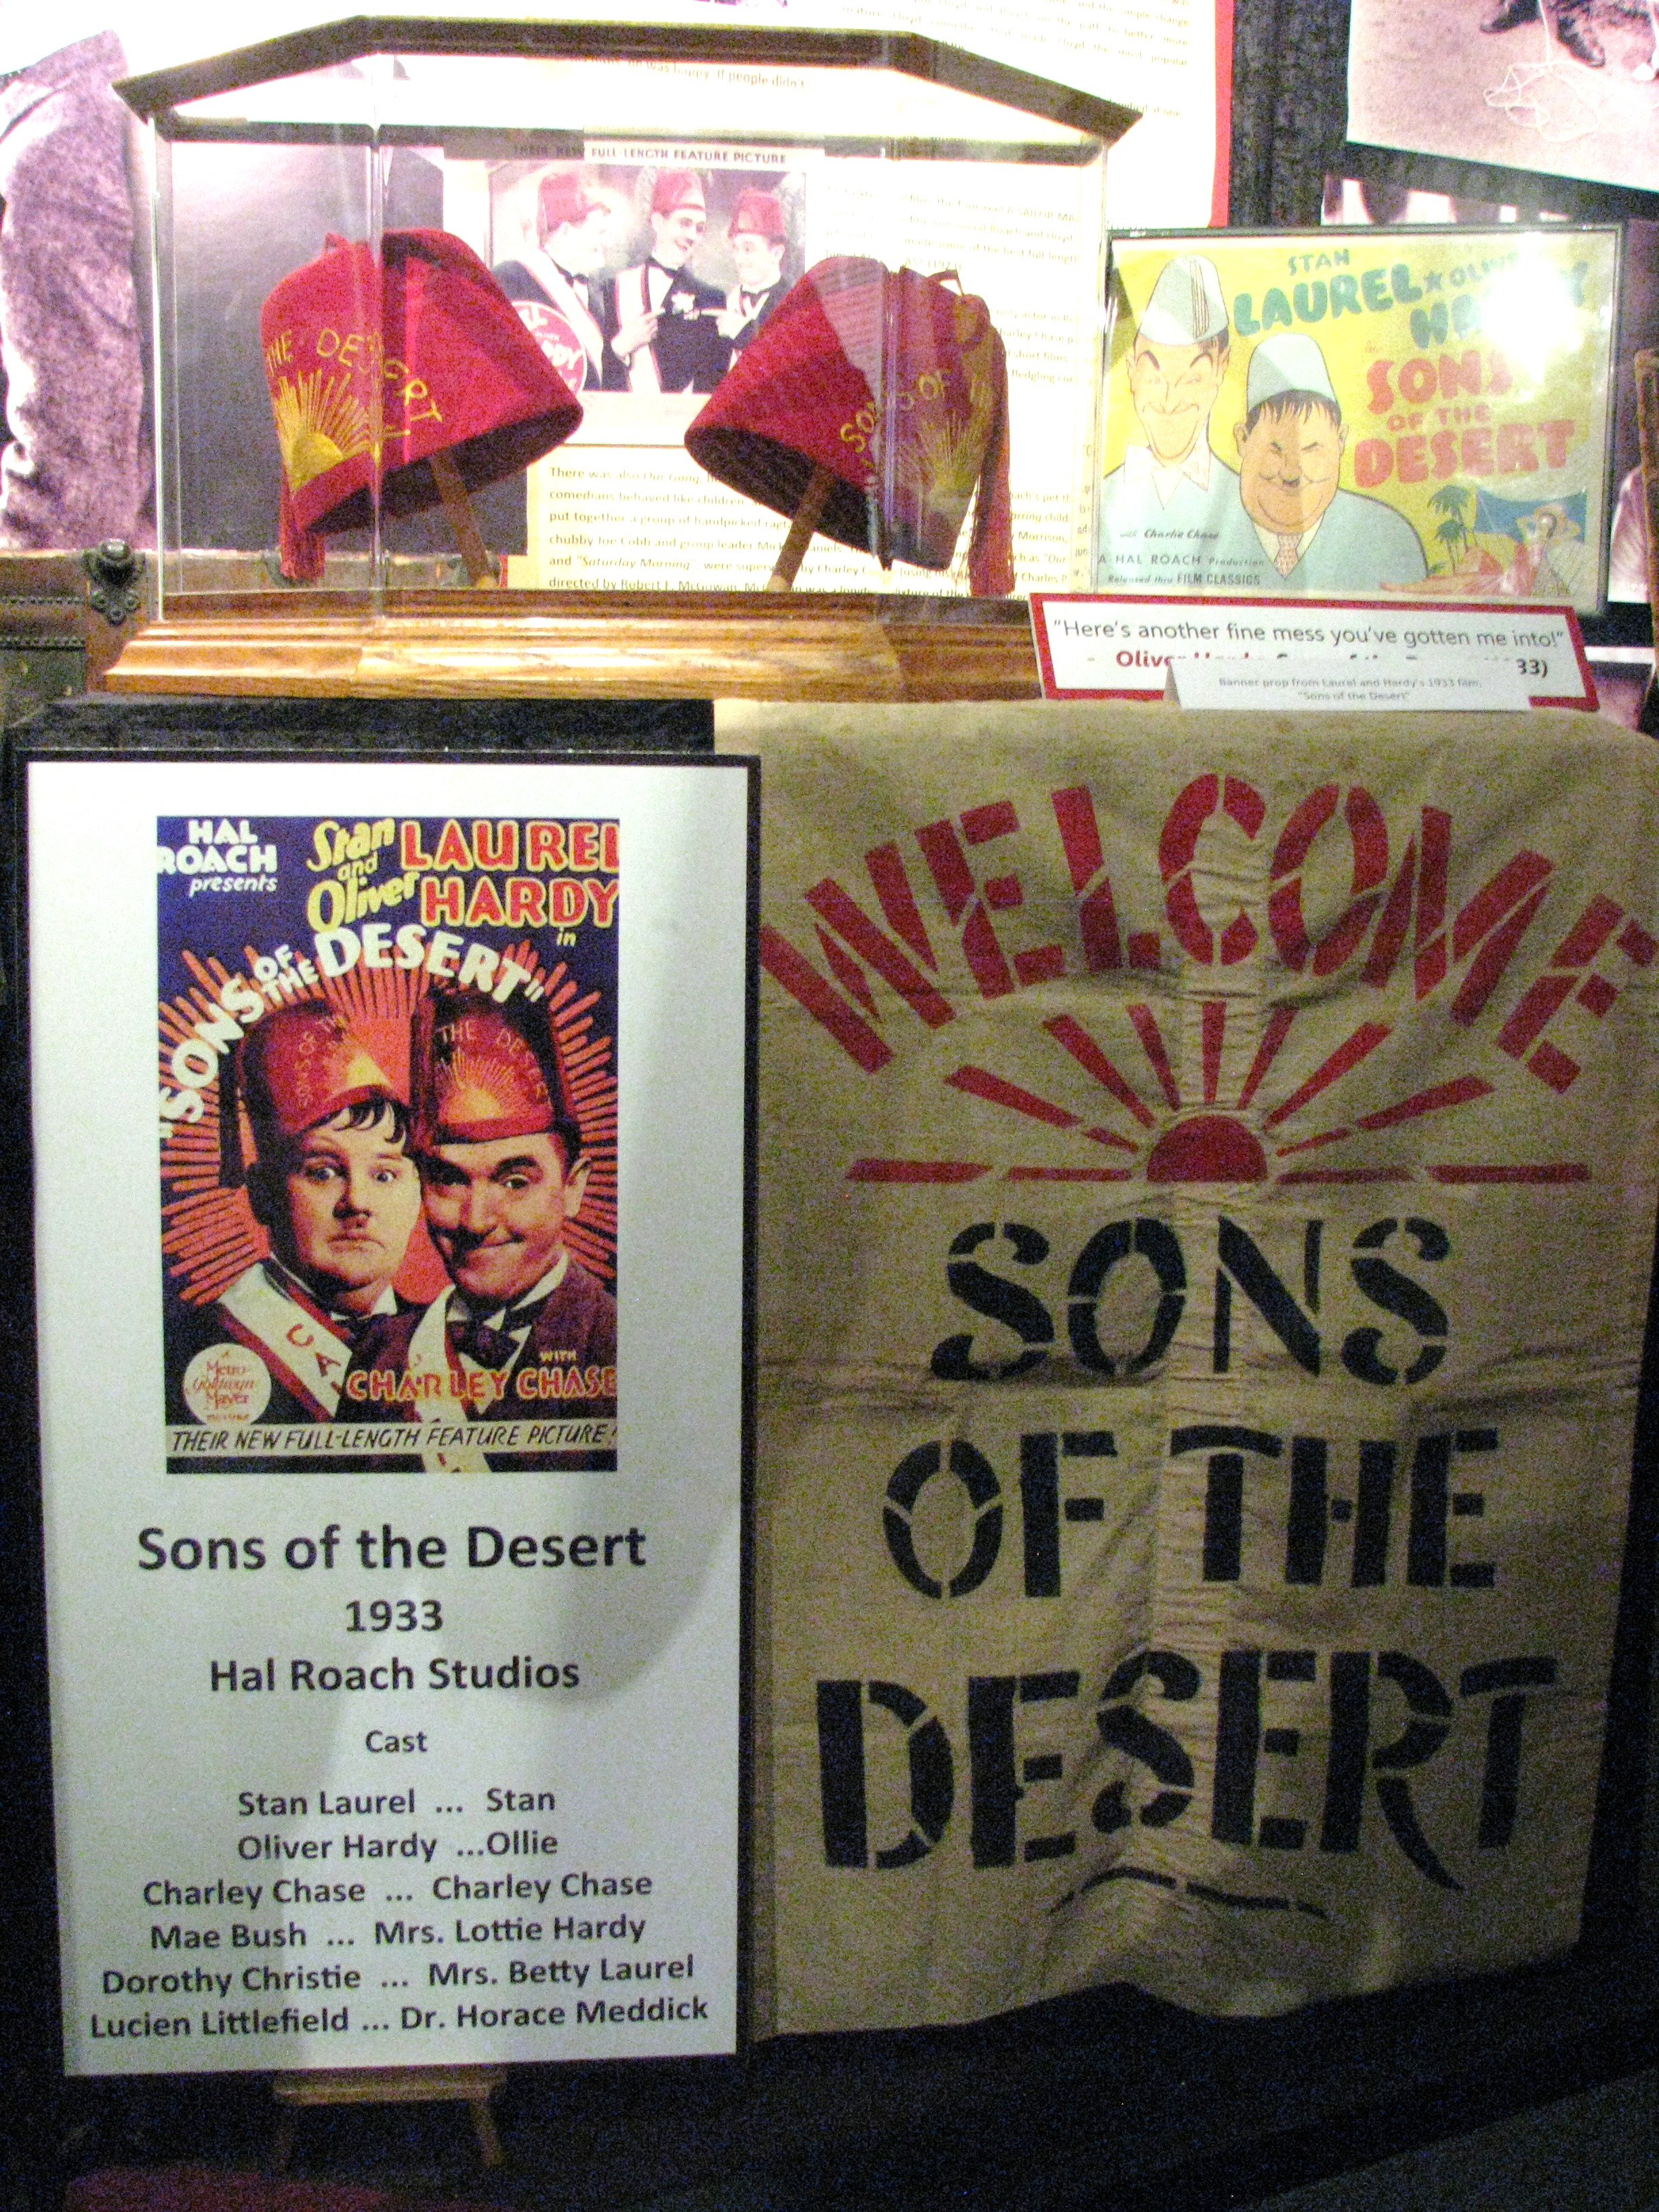 The Sons of the Desert display